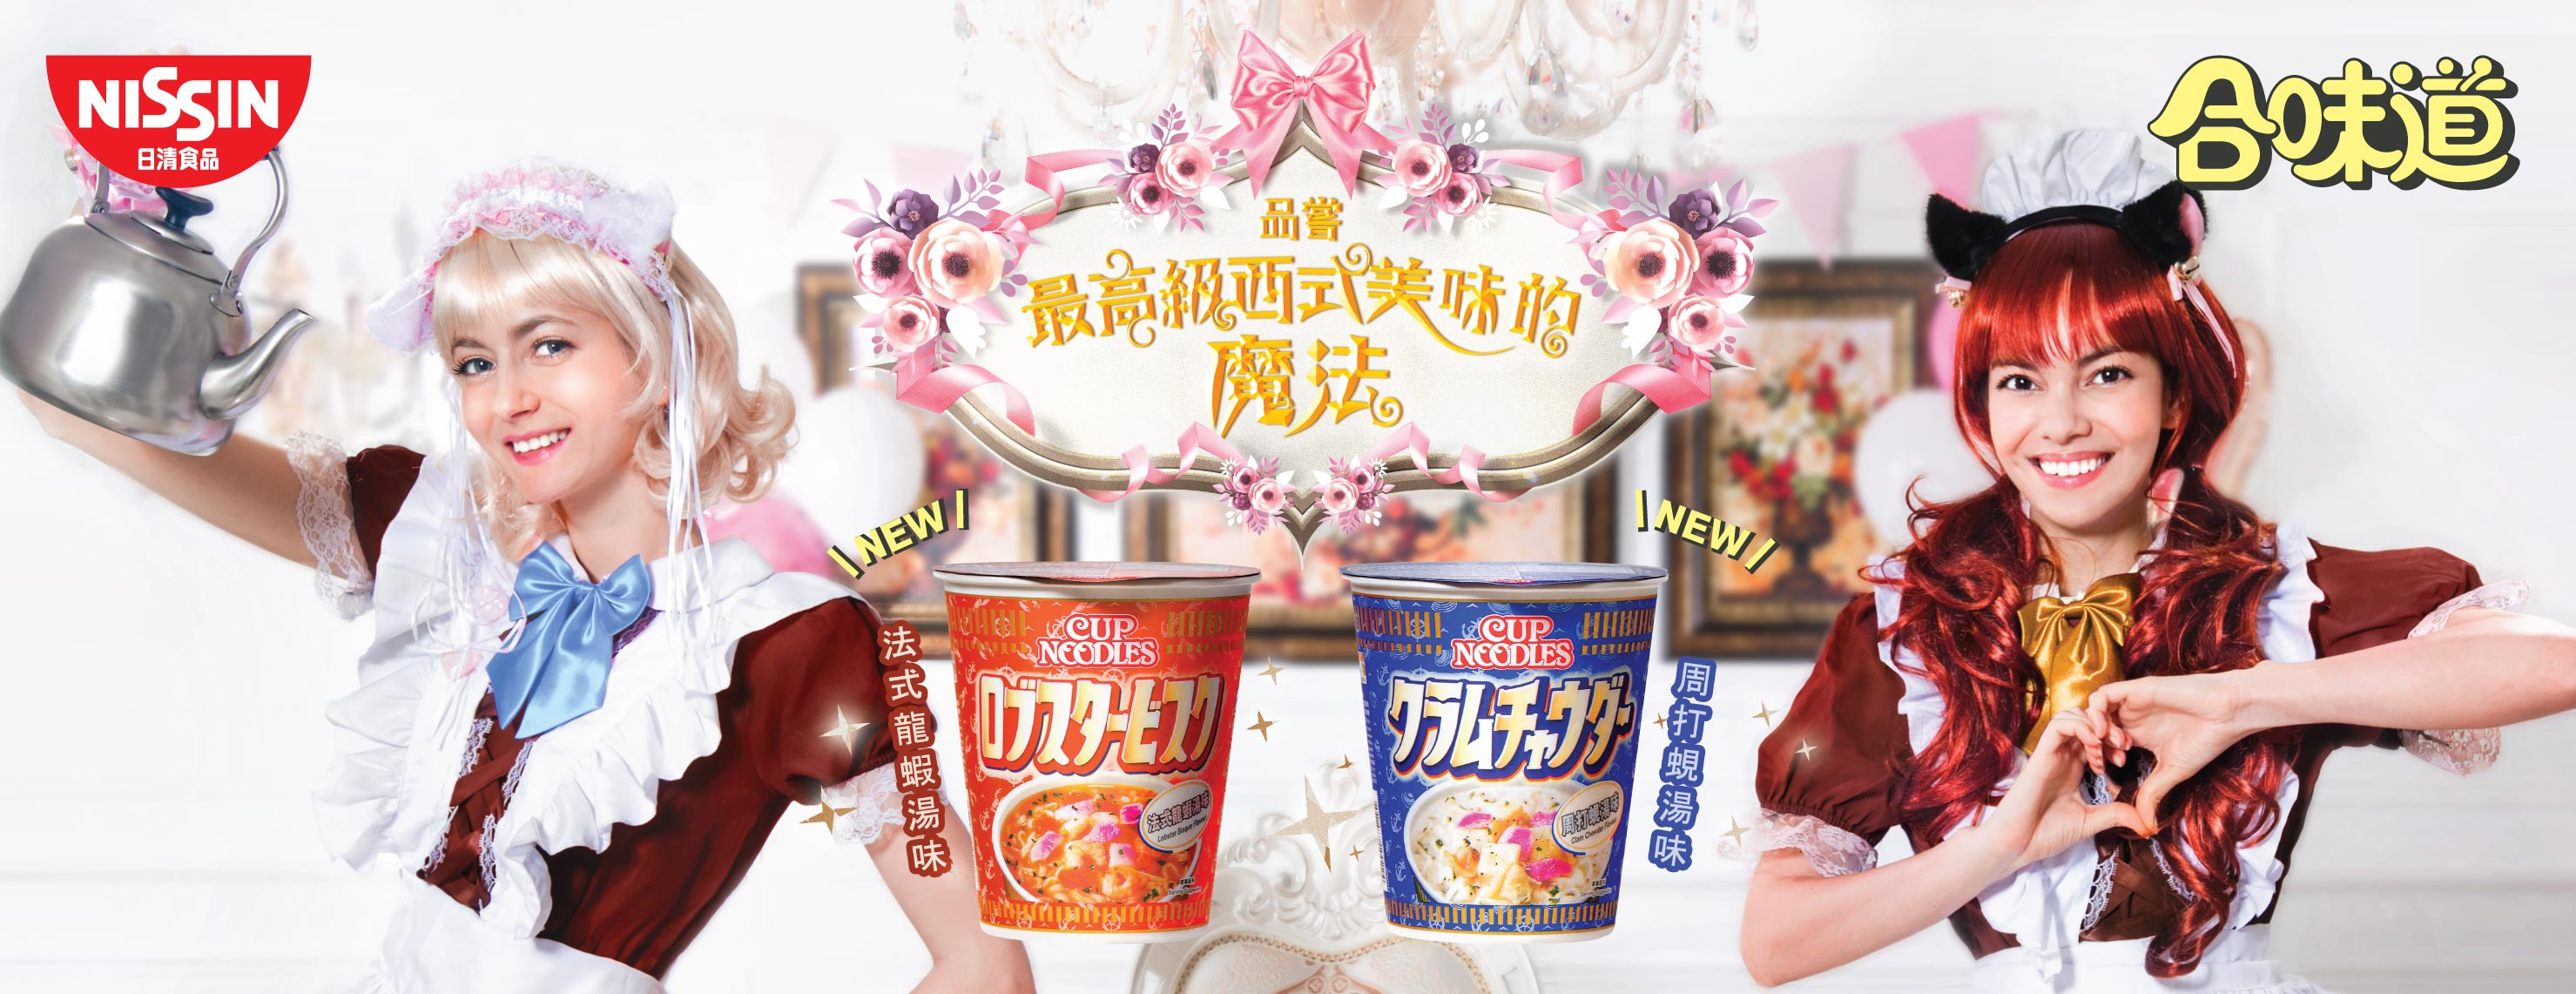 Light cupnoodle banner